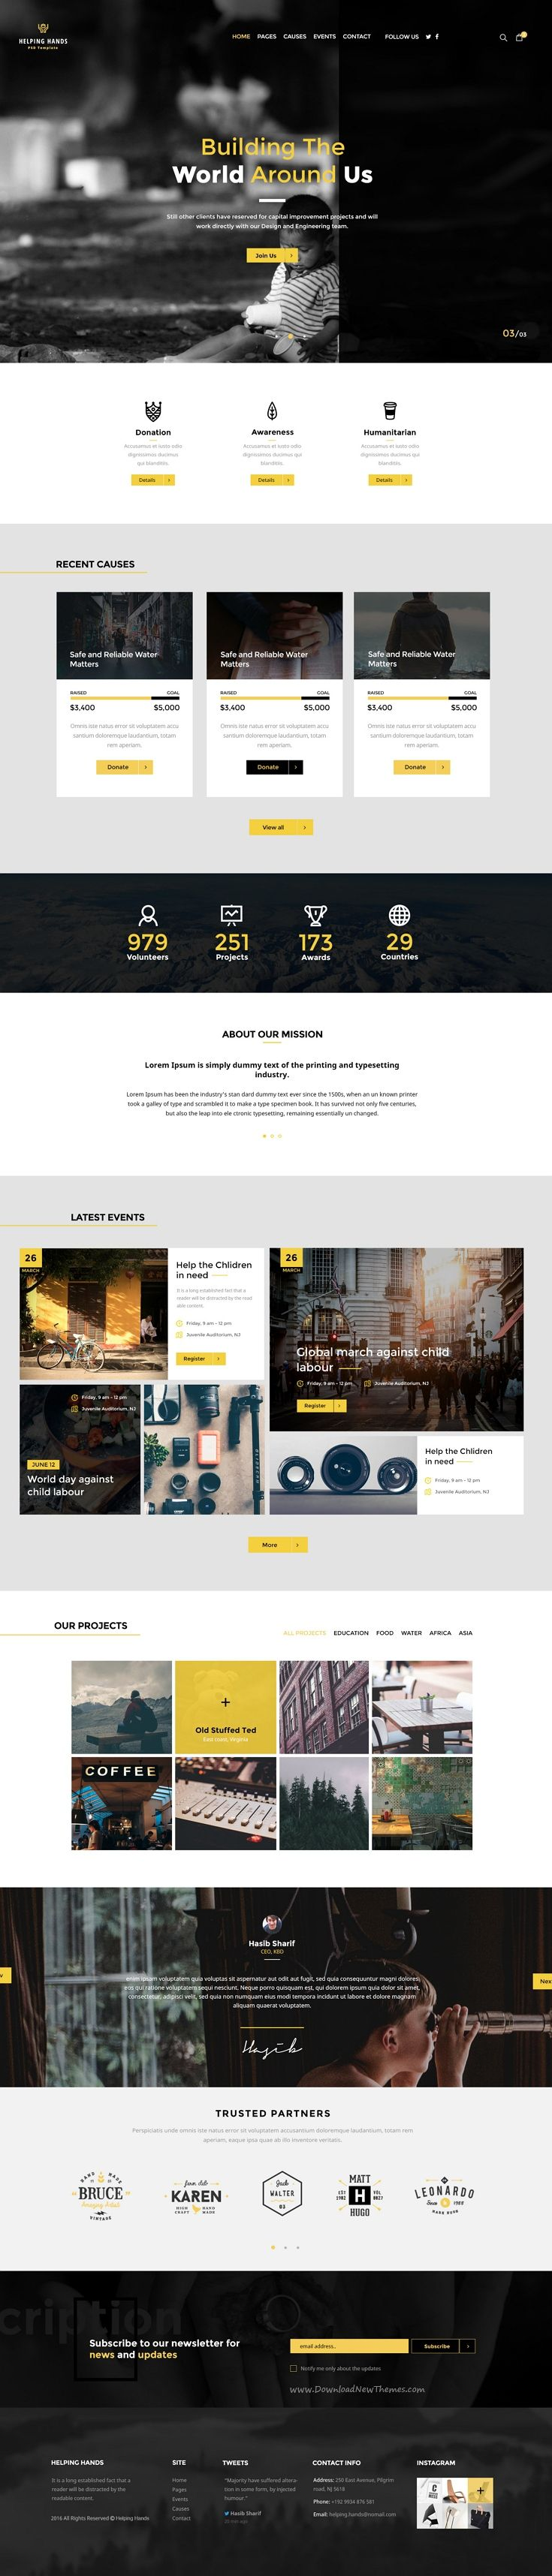 Helping Hands is beautifully design 3 in 1 PSD Template for Multipurpose #Non-profit #organizations #website. Download Now!